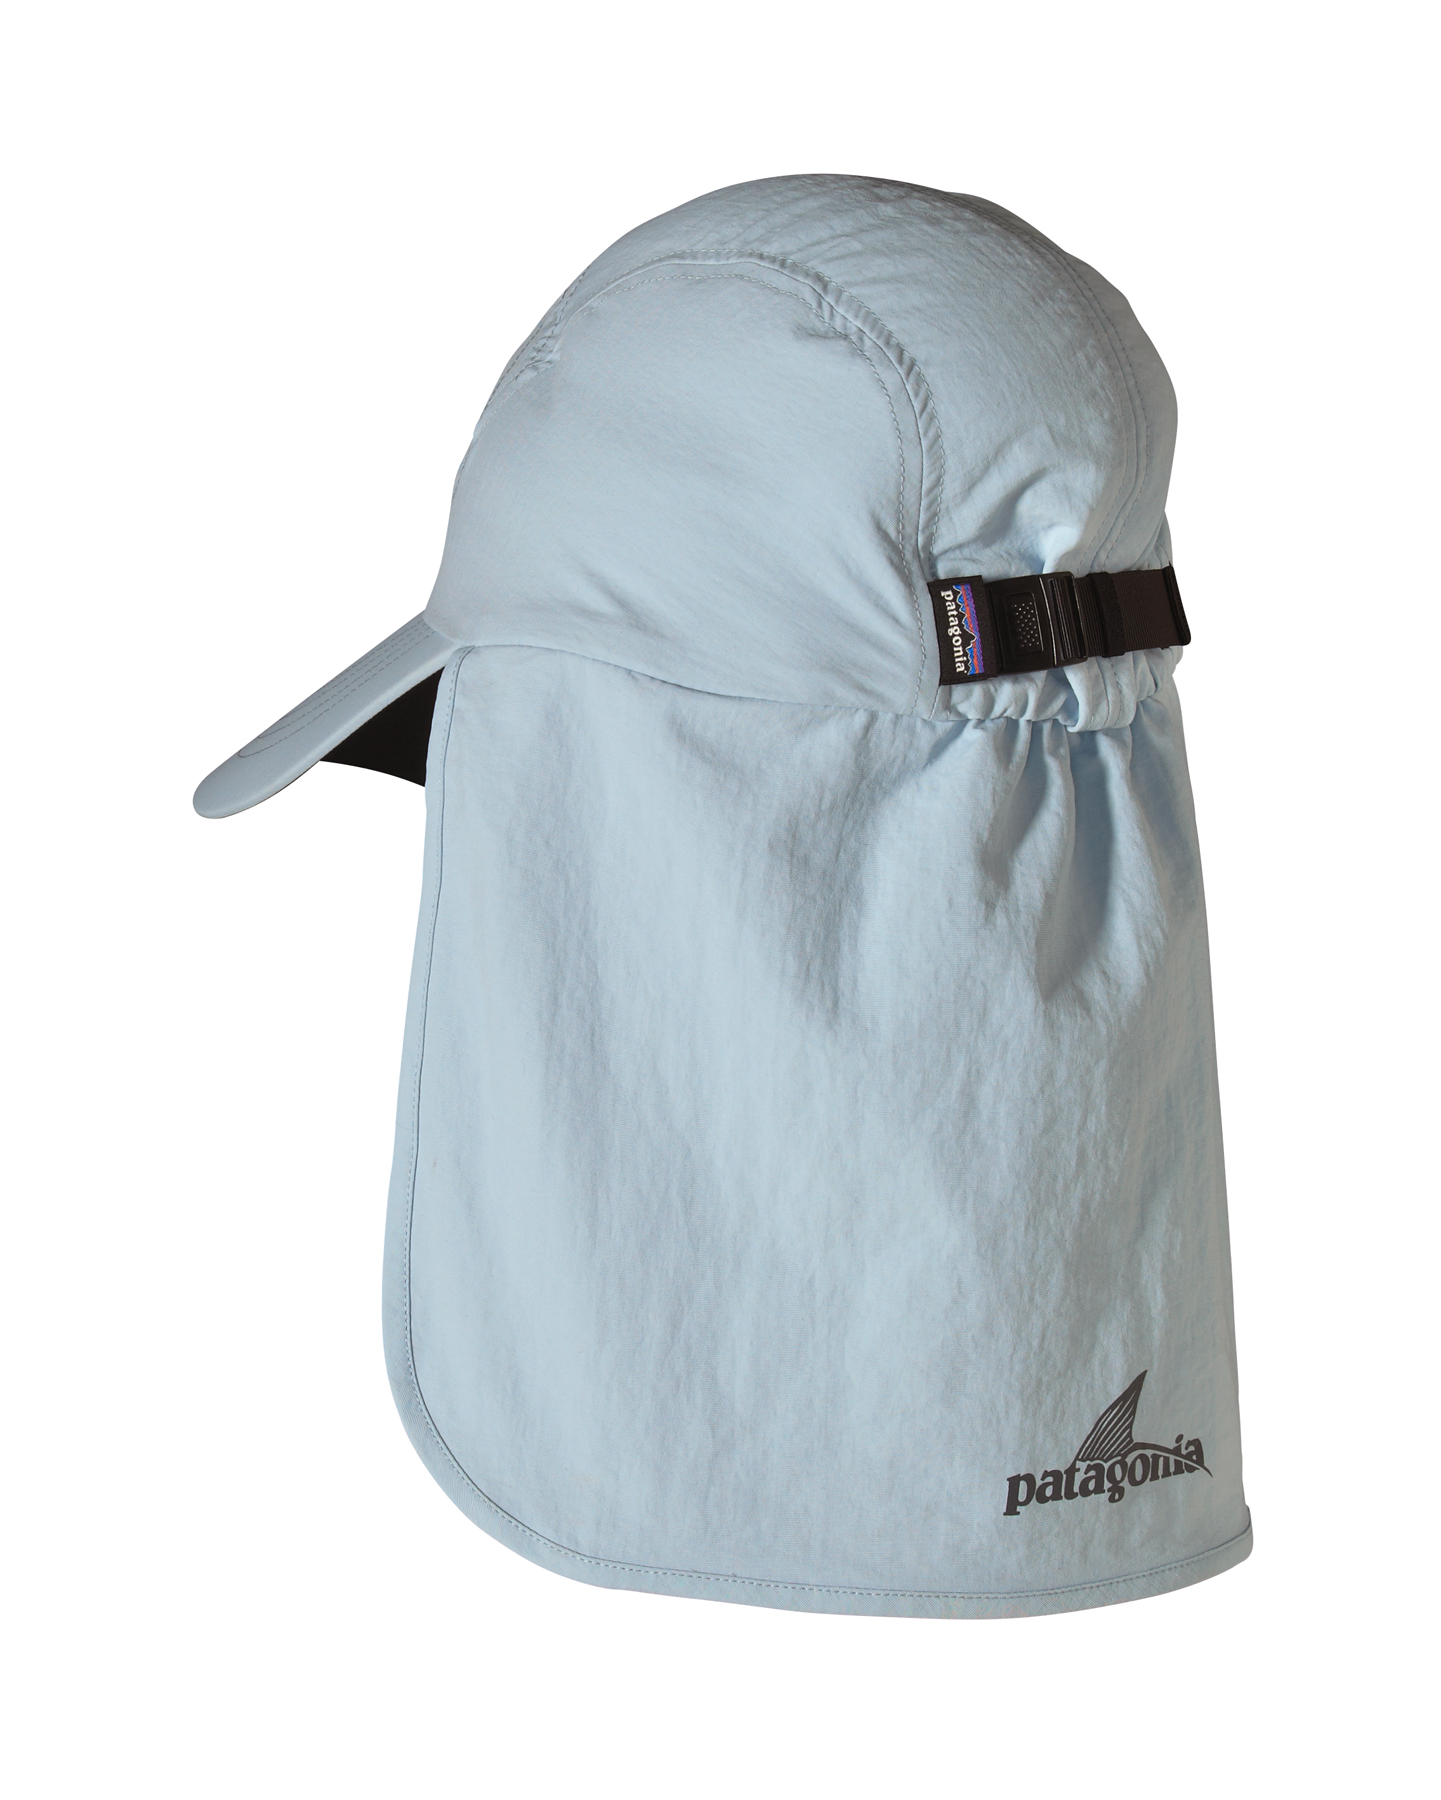 Patagonia bimini cap glasgow angling centre for Patagonia fly fishing hat